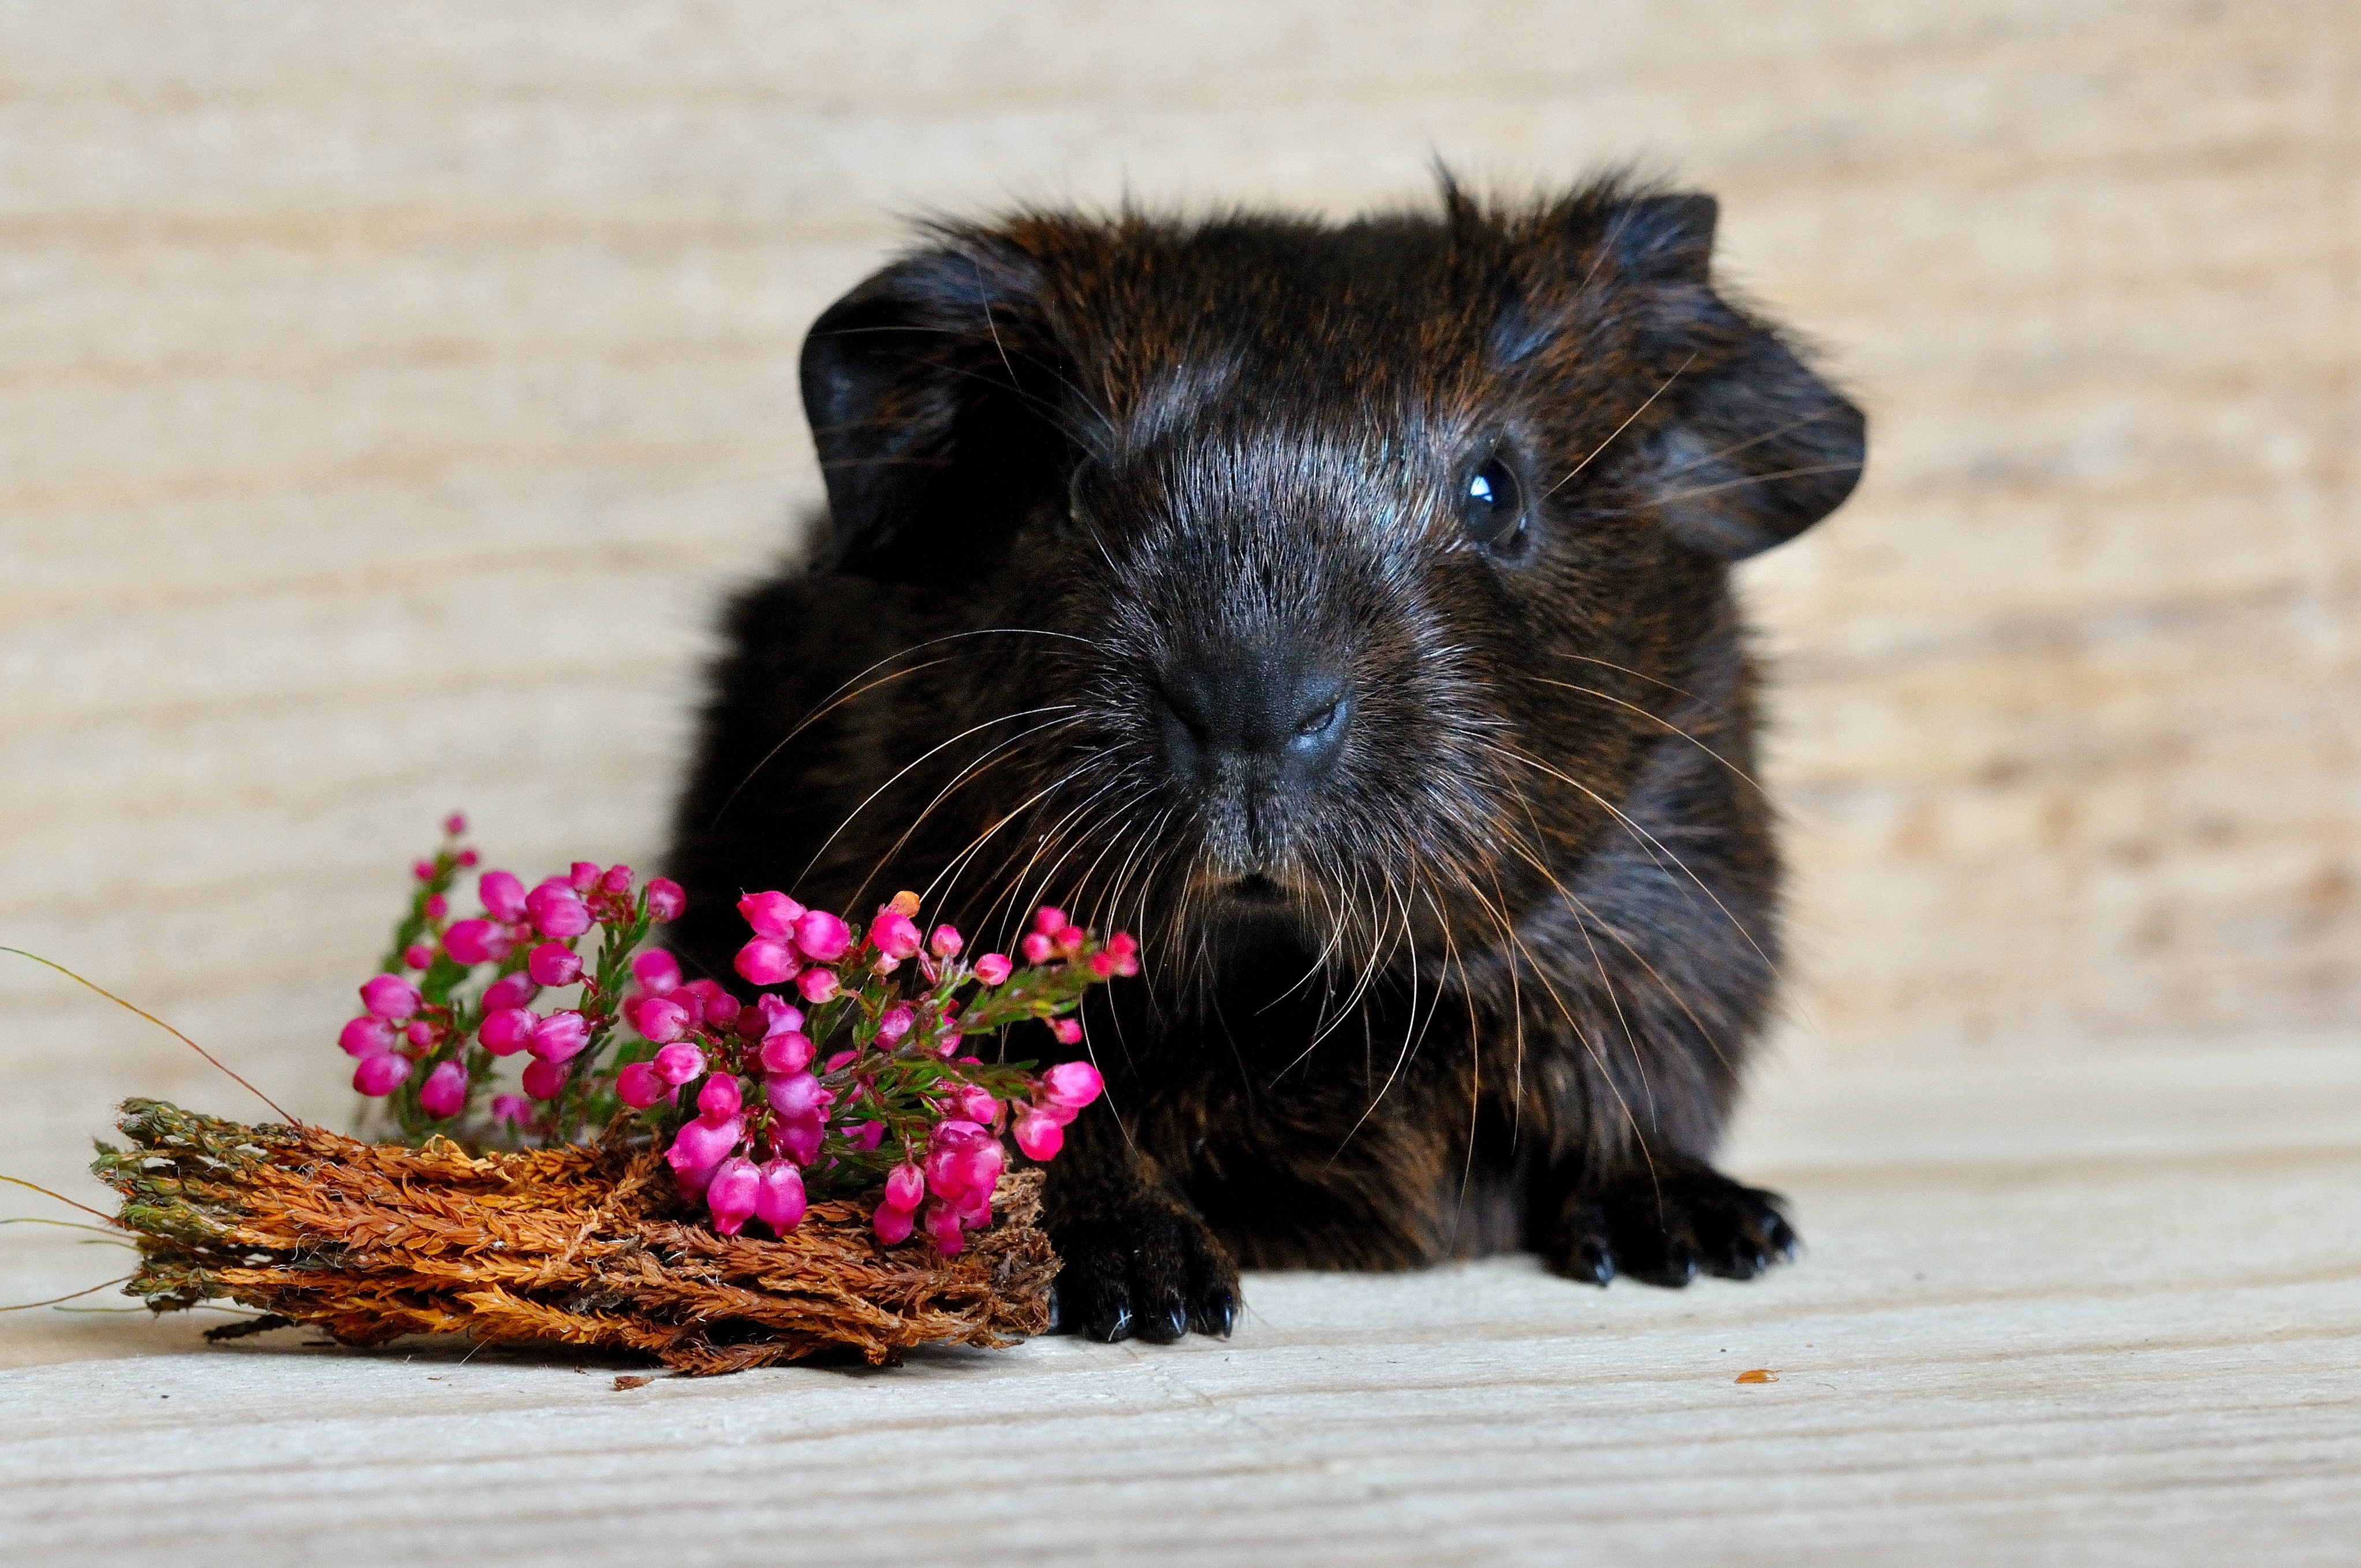 155253 download wallpaper Animals, Guinea Pig, Muzzle, Rodent, Flowers screensavers and pictures for free